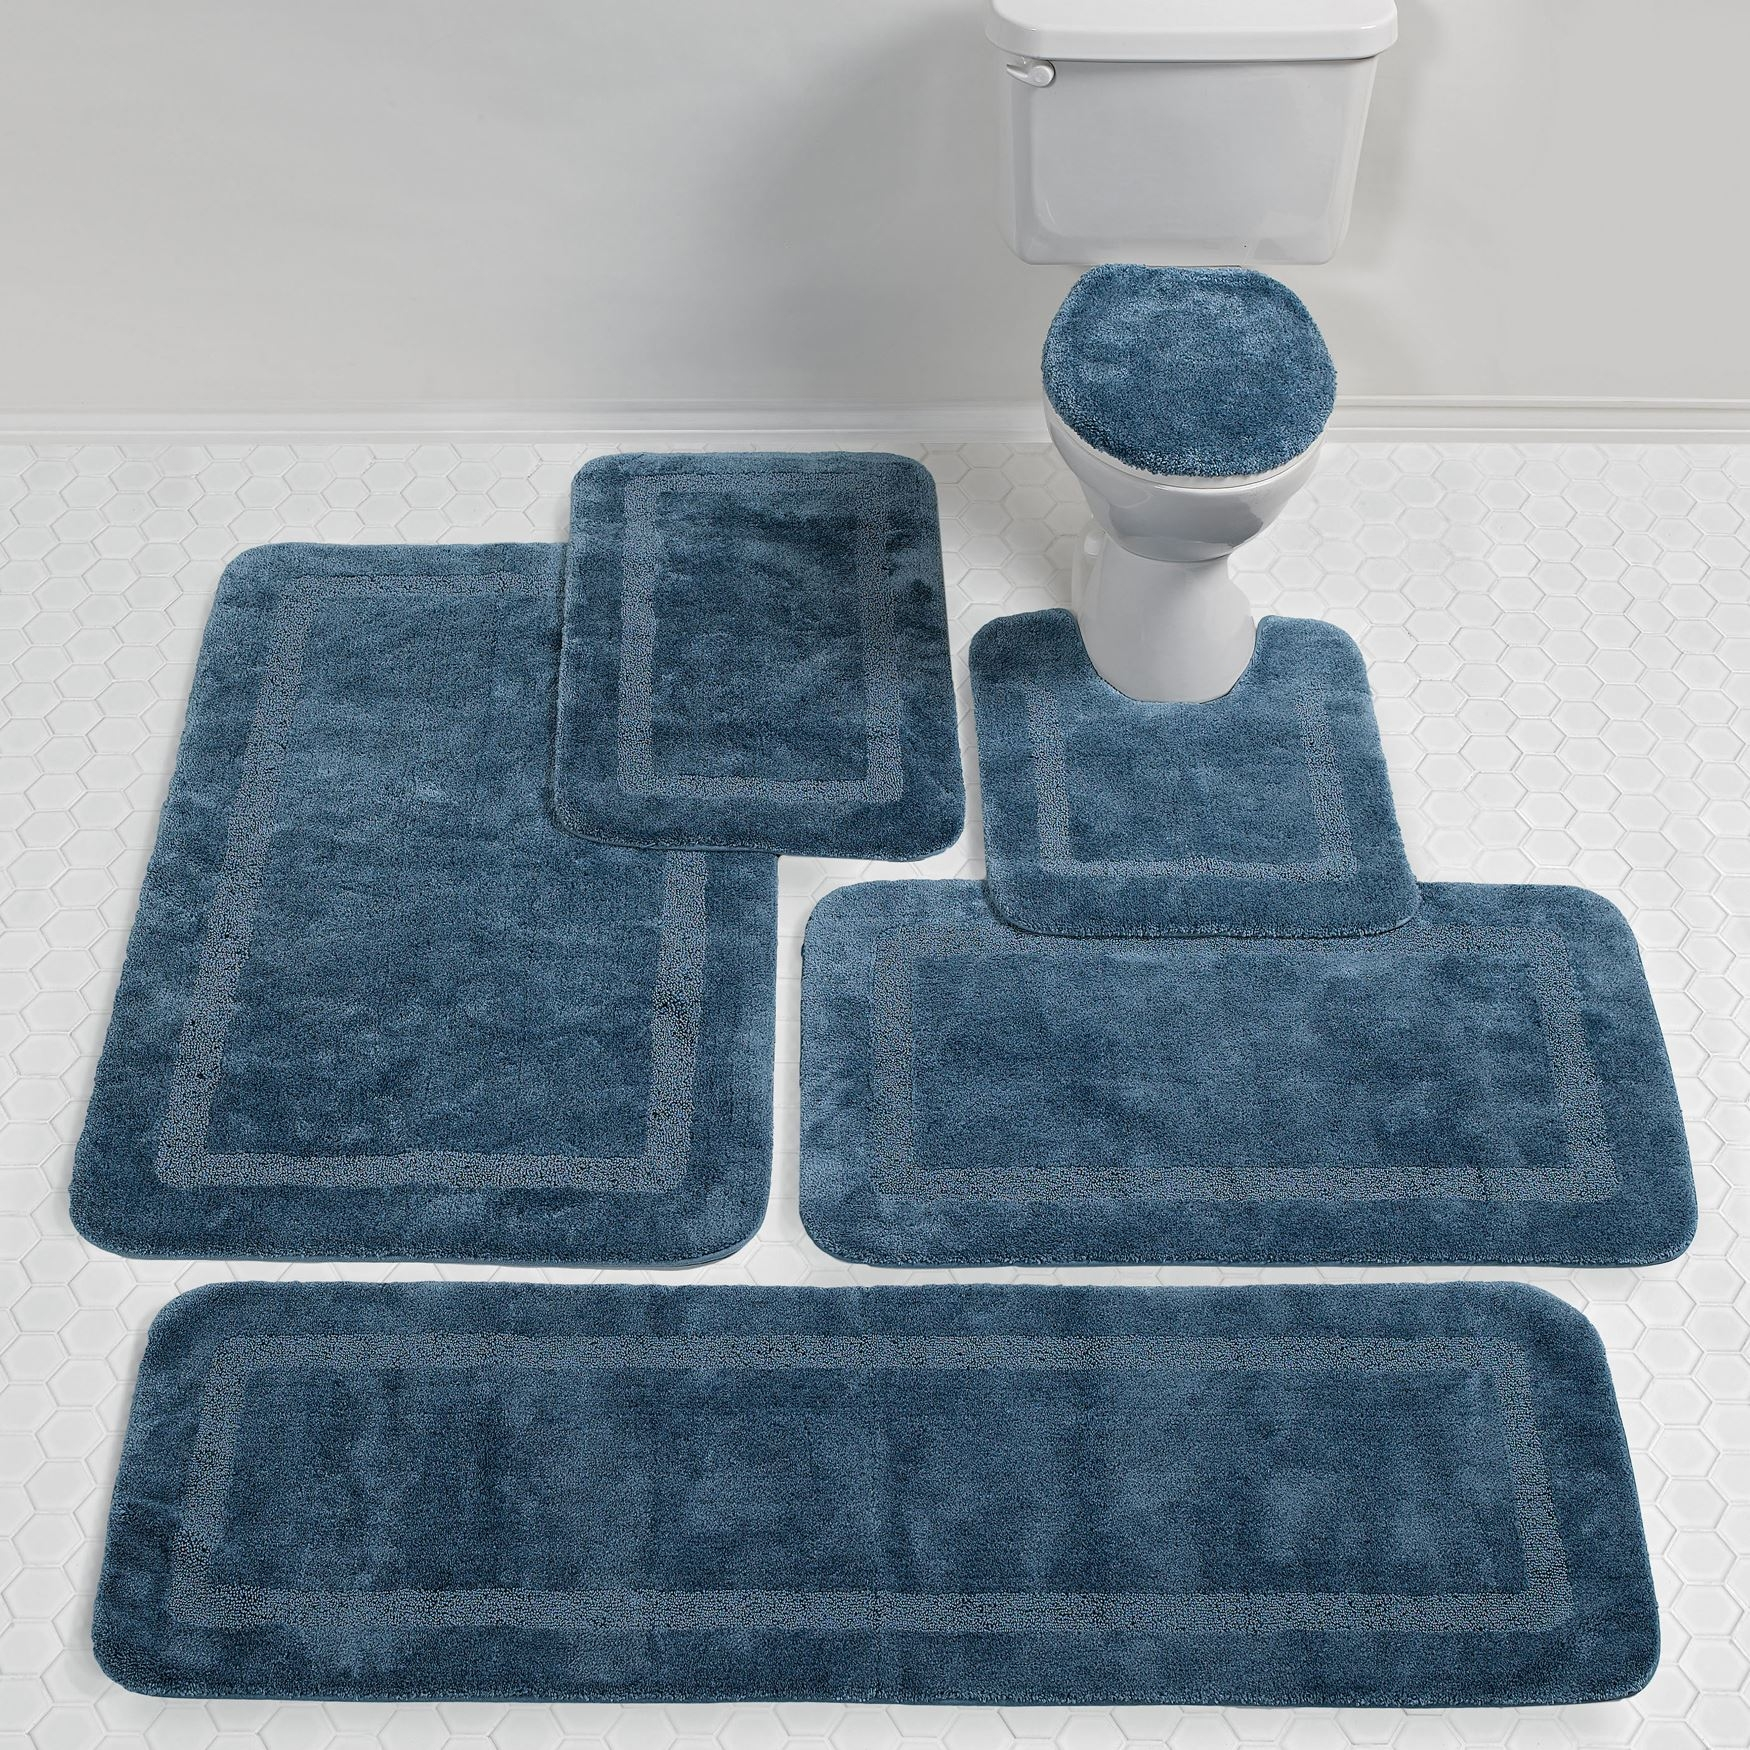 Permalink to Super Soft Bathroom Rugs